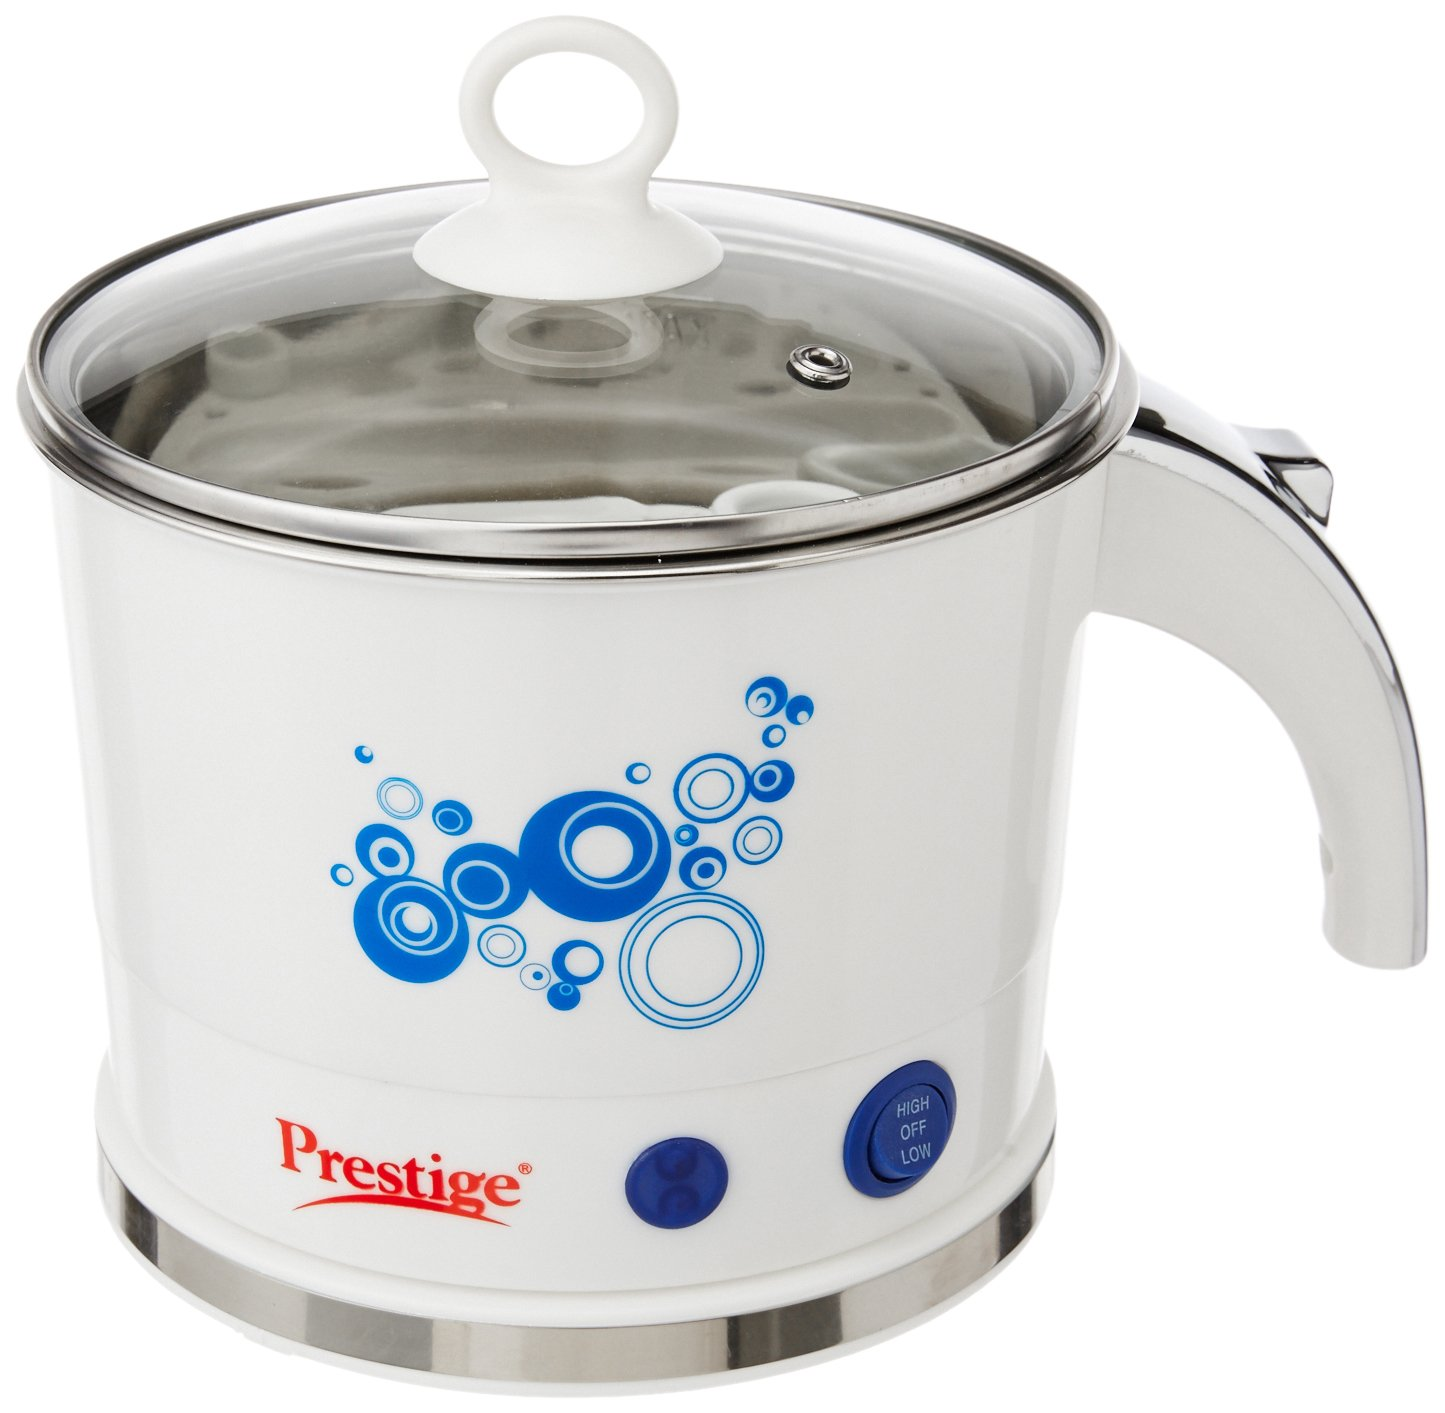 Prestige PMC 2.0 Multi-Cooker